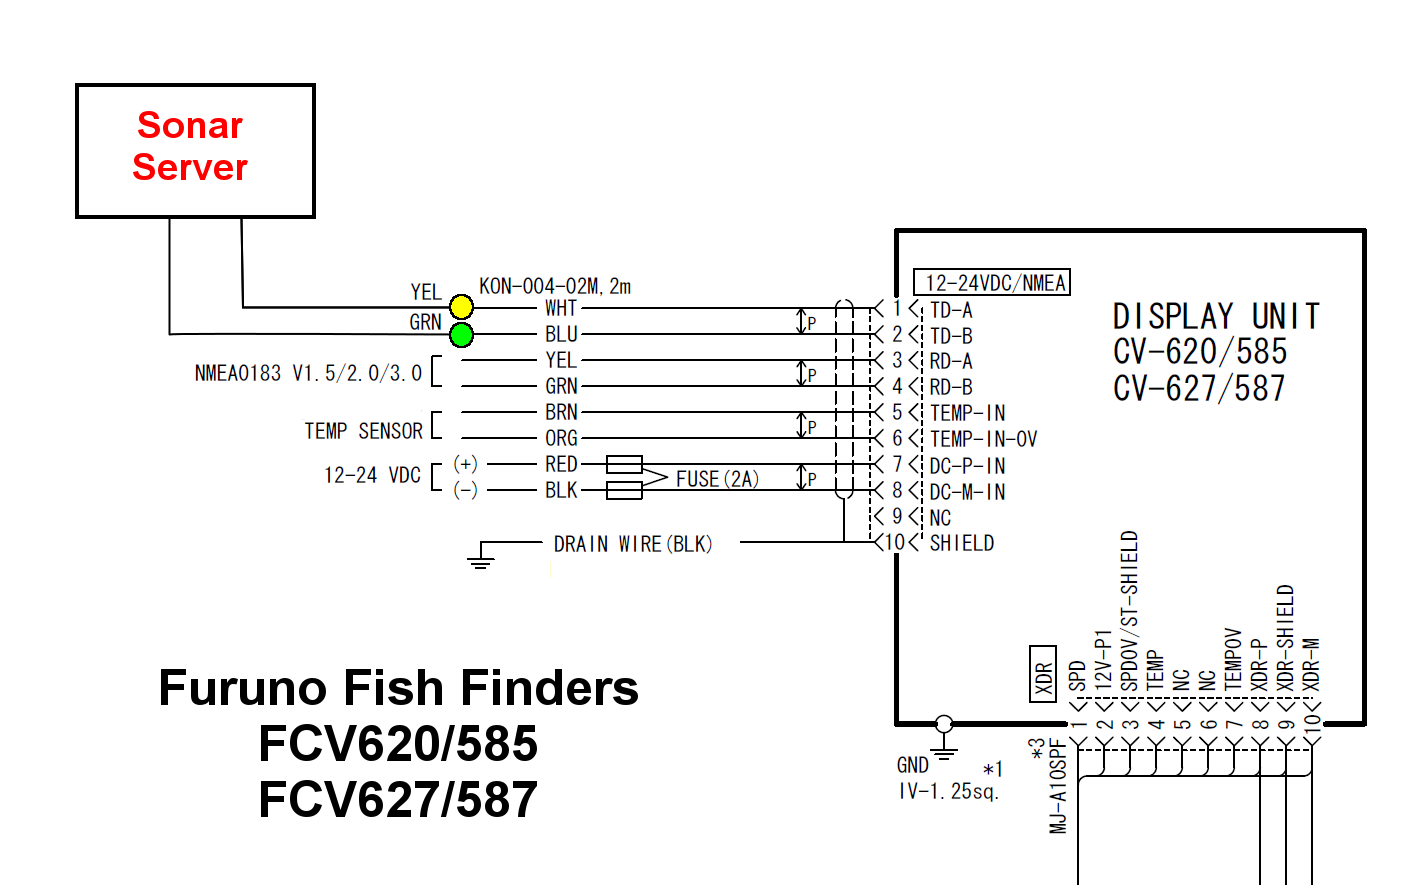 interfacing to furuno fish finders sonar server it